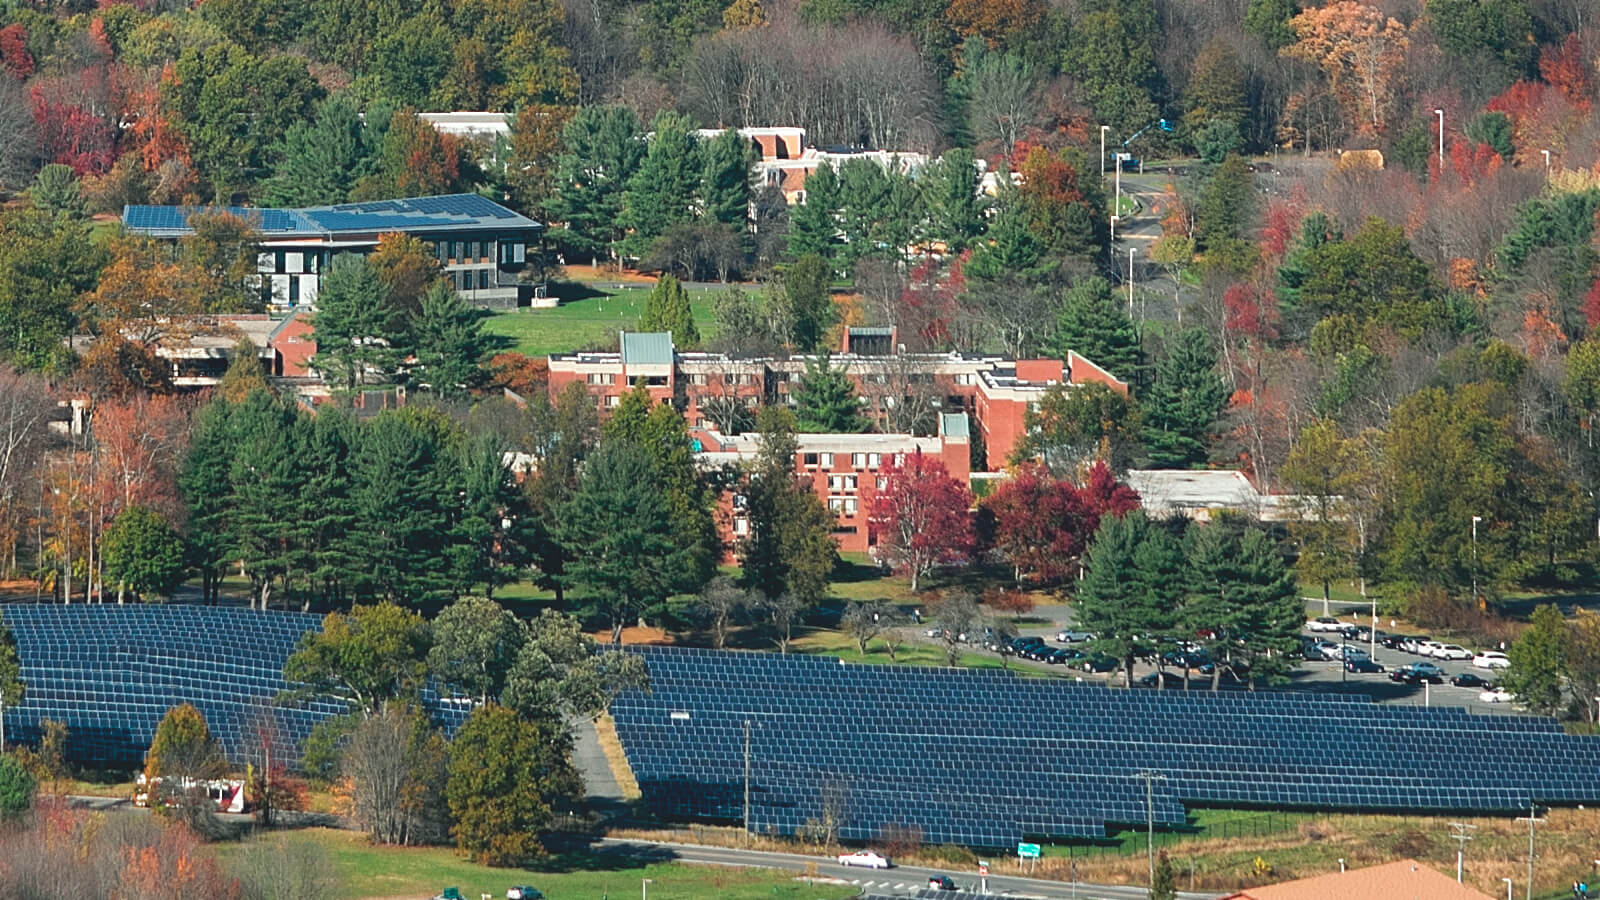 An overhead view of the campus at Hampshire College.